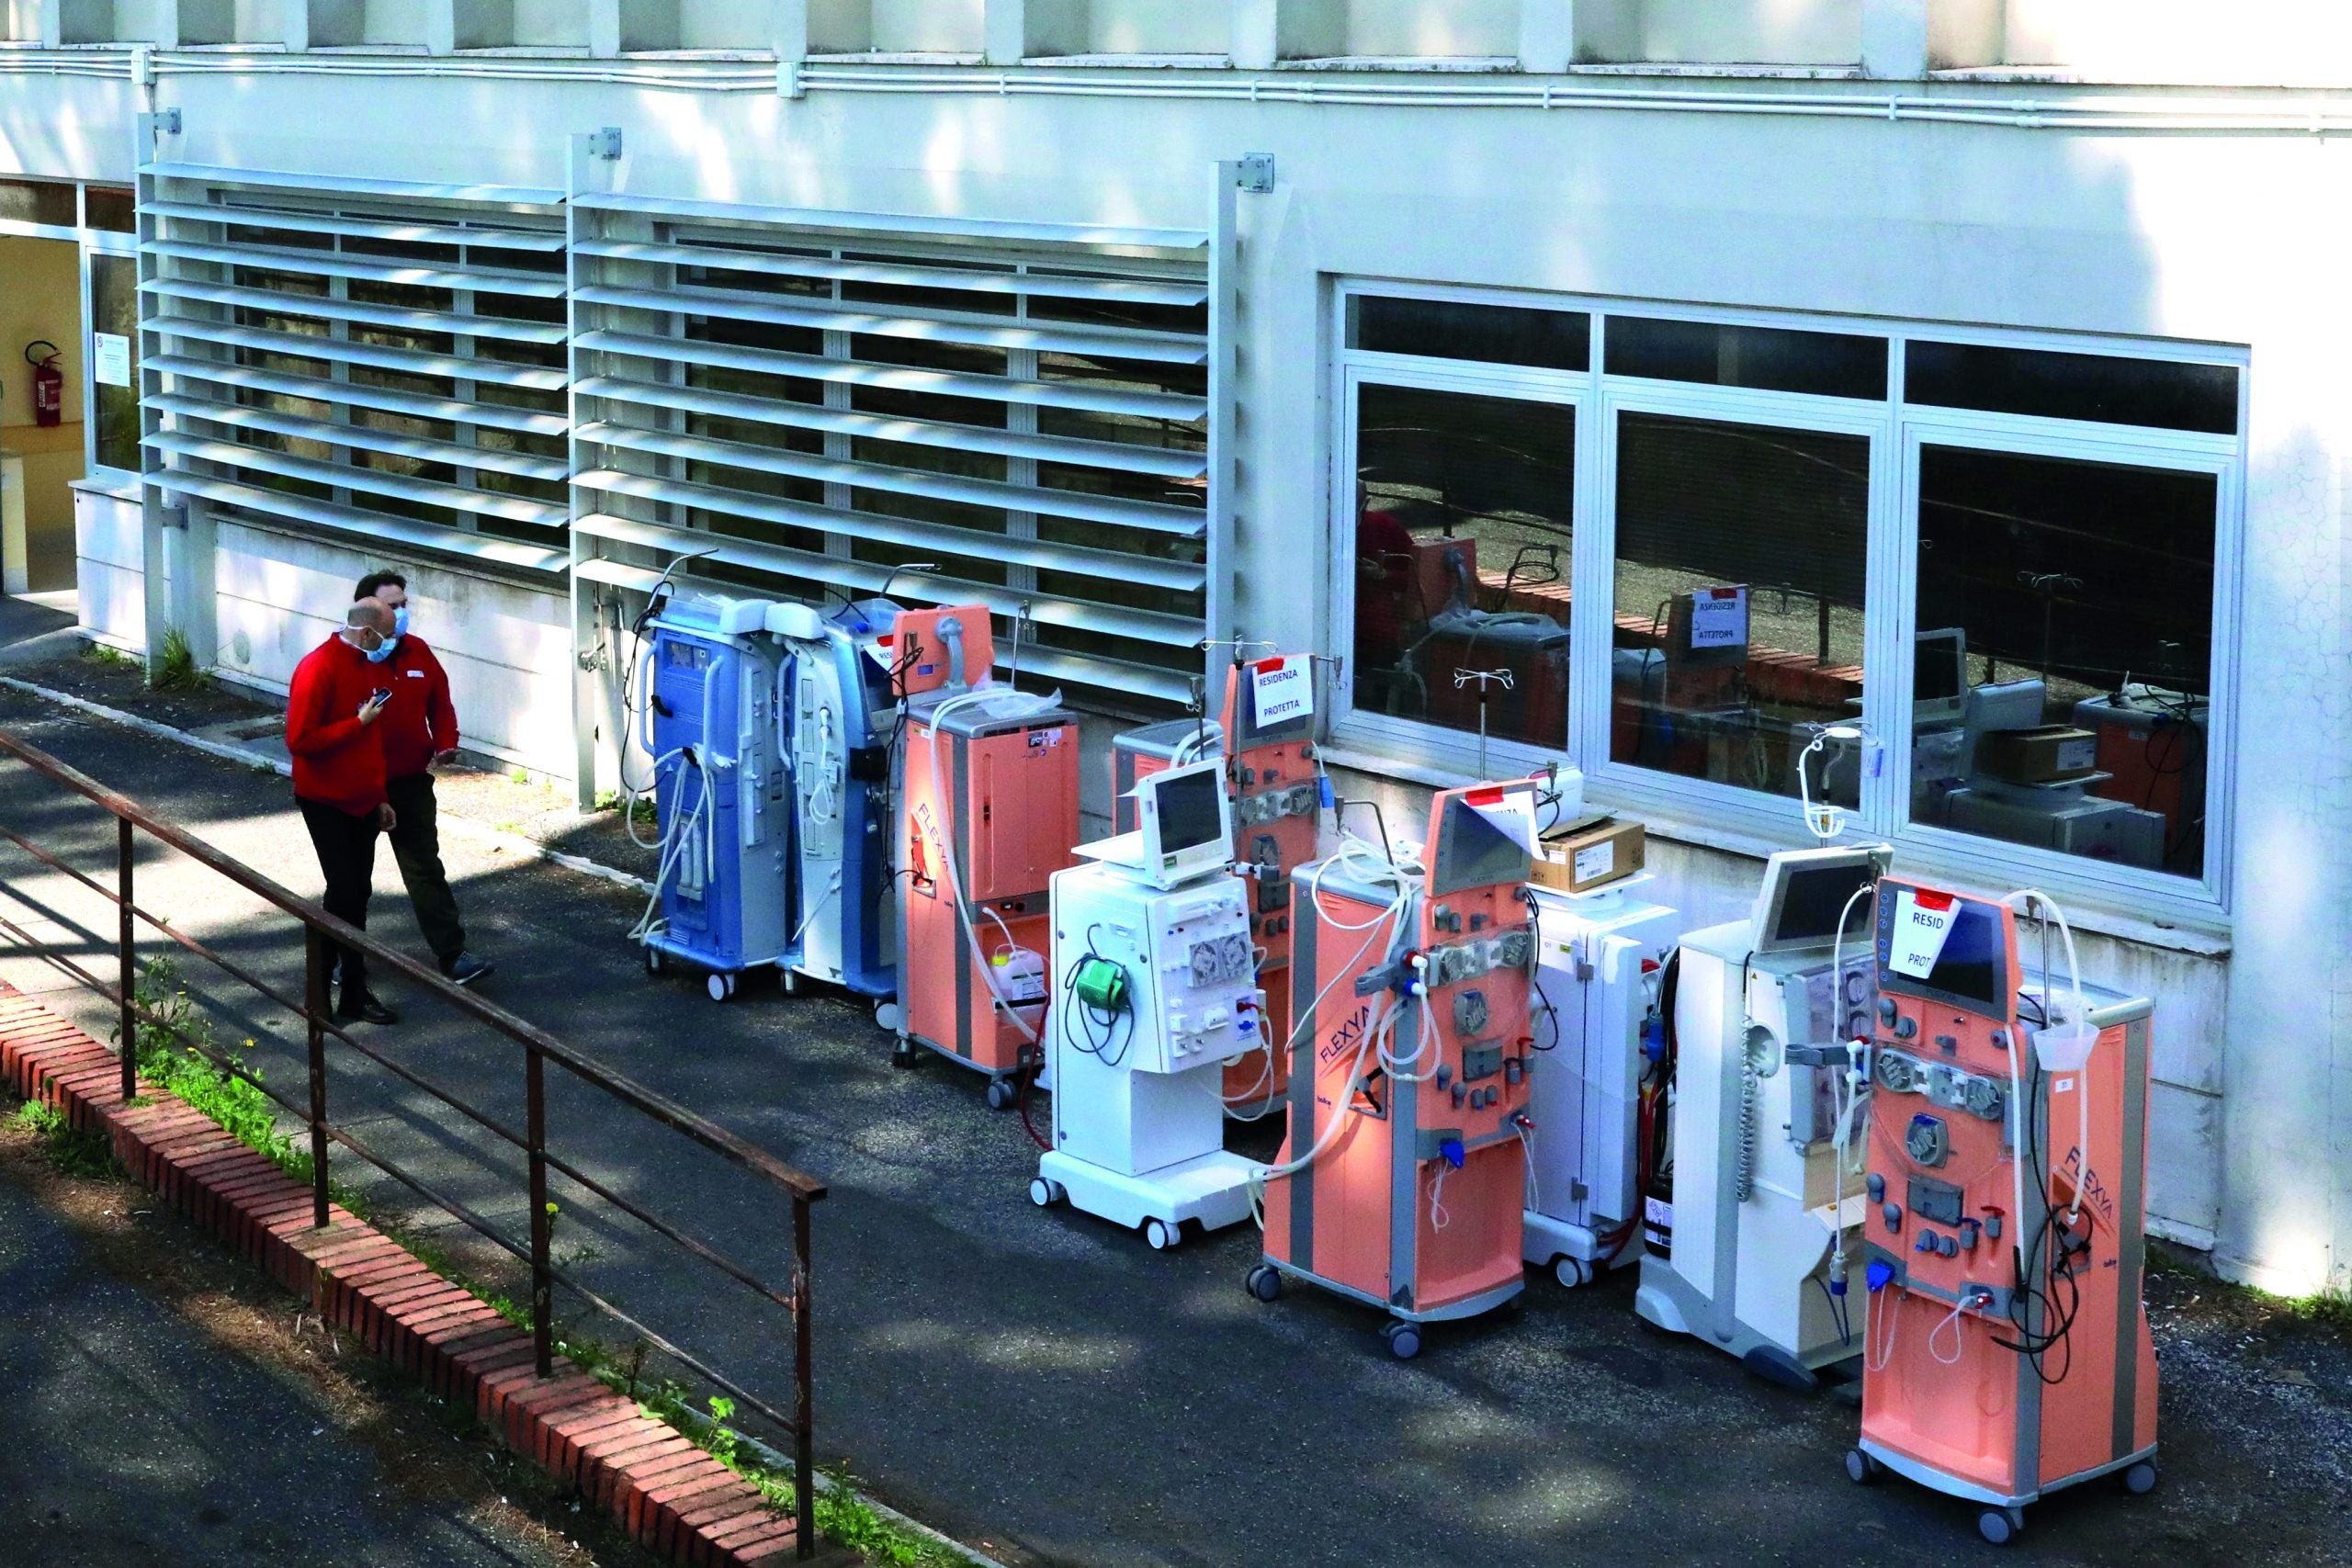 How to manufacture ventilators for a system in crisis